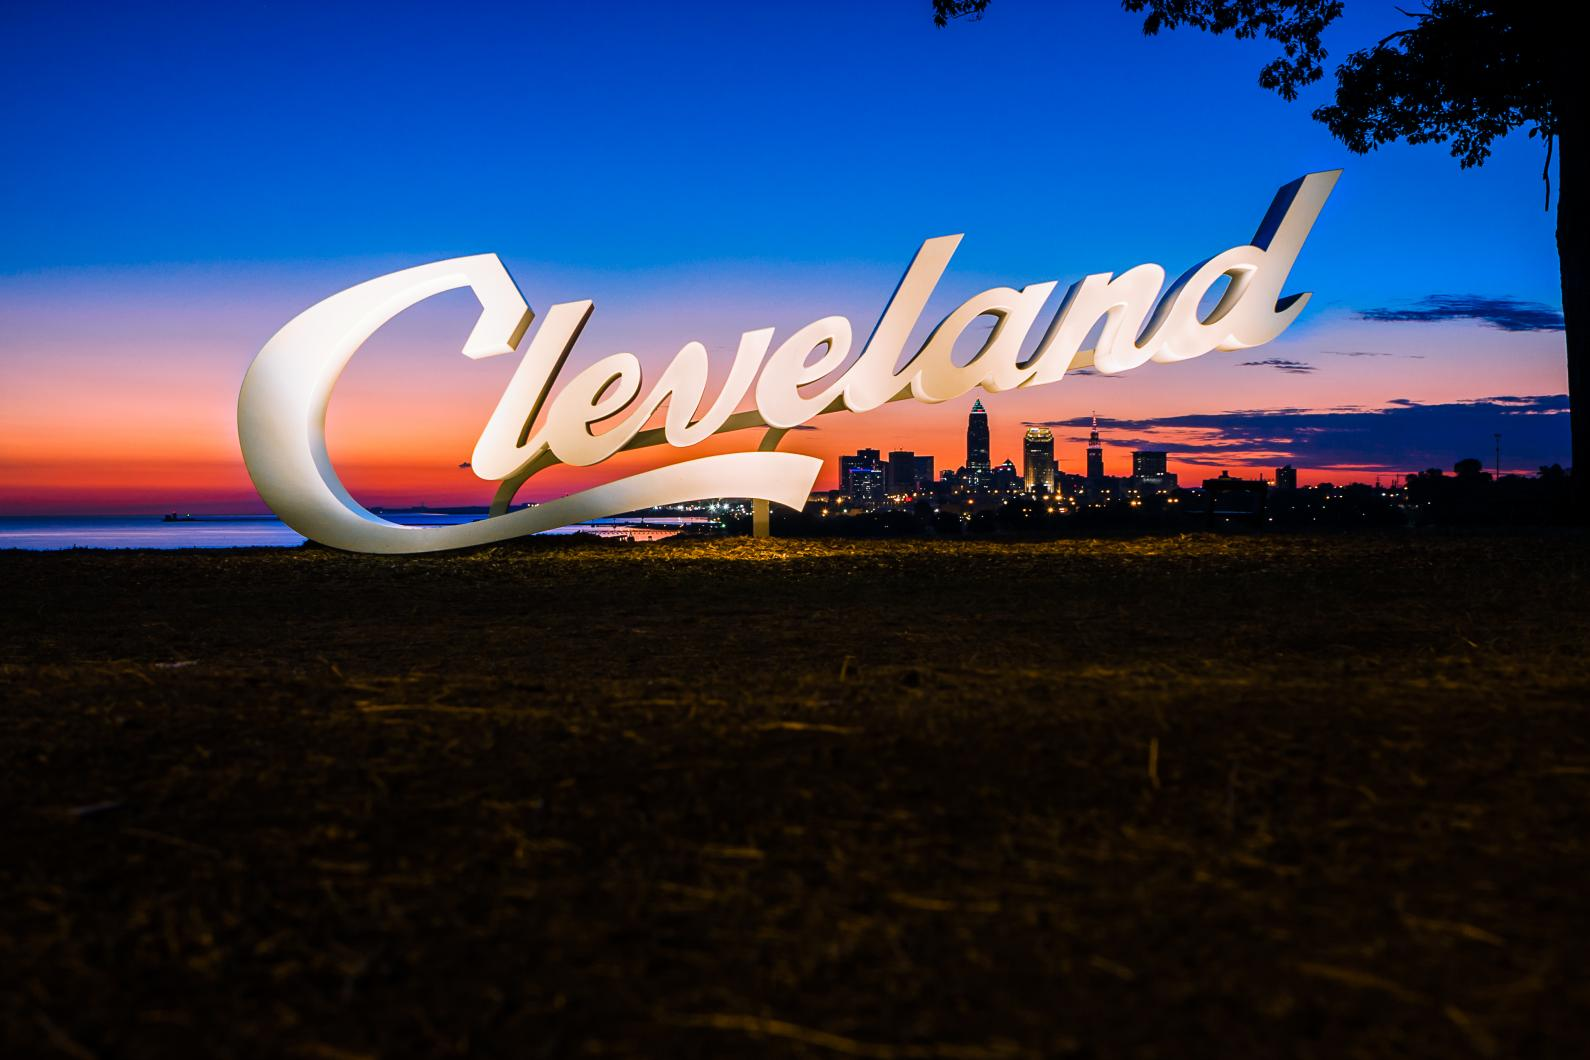 cleveland-sign-during-sunrise-at-edgewater-park-city-beneath-the-sign